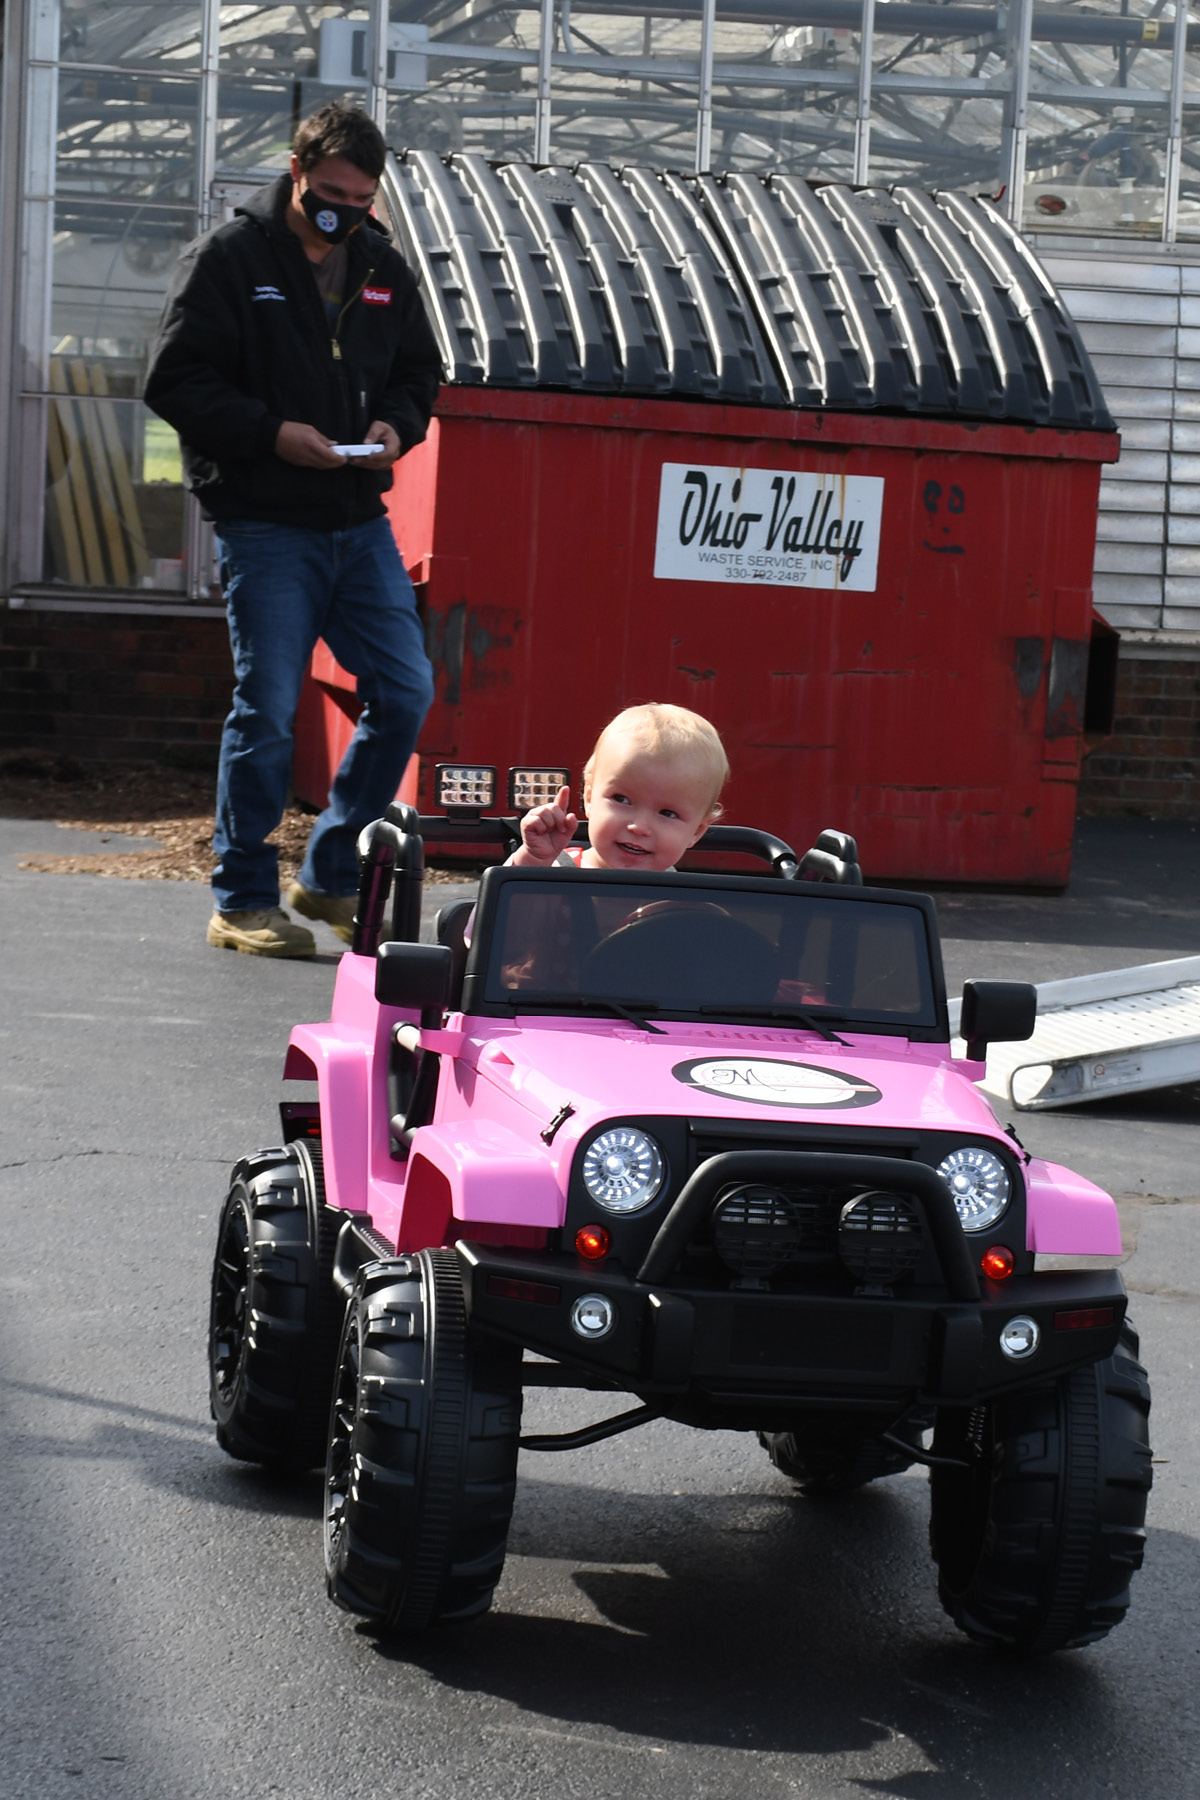 toddler in ride-on car, man in back with remote